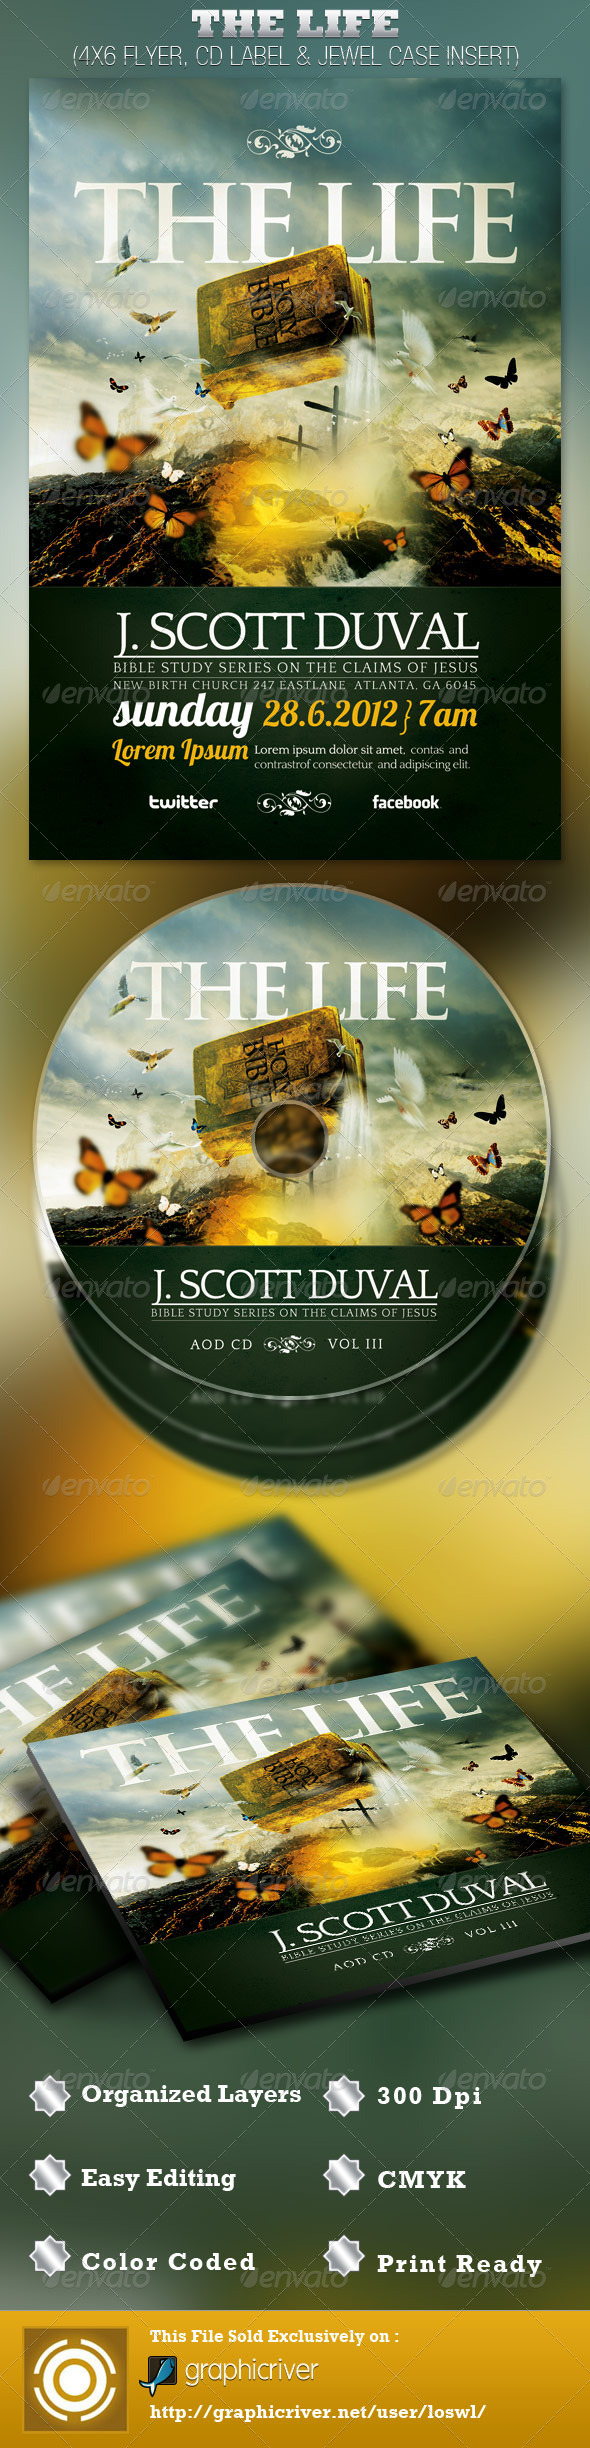 The Life Church Flyer and CD Template - Church Flyers